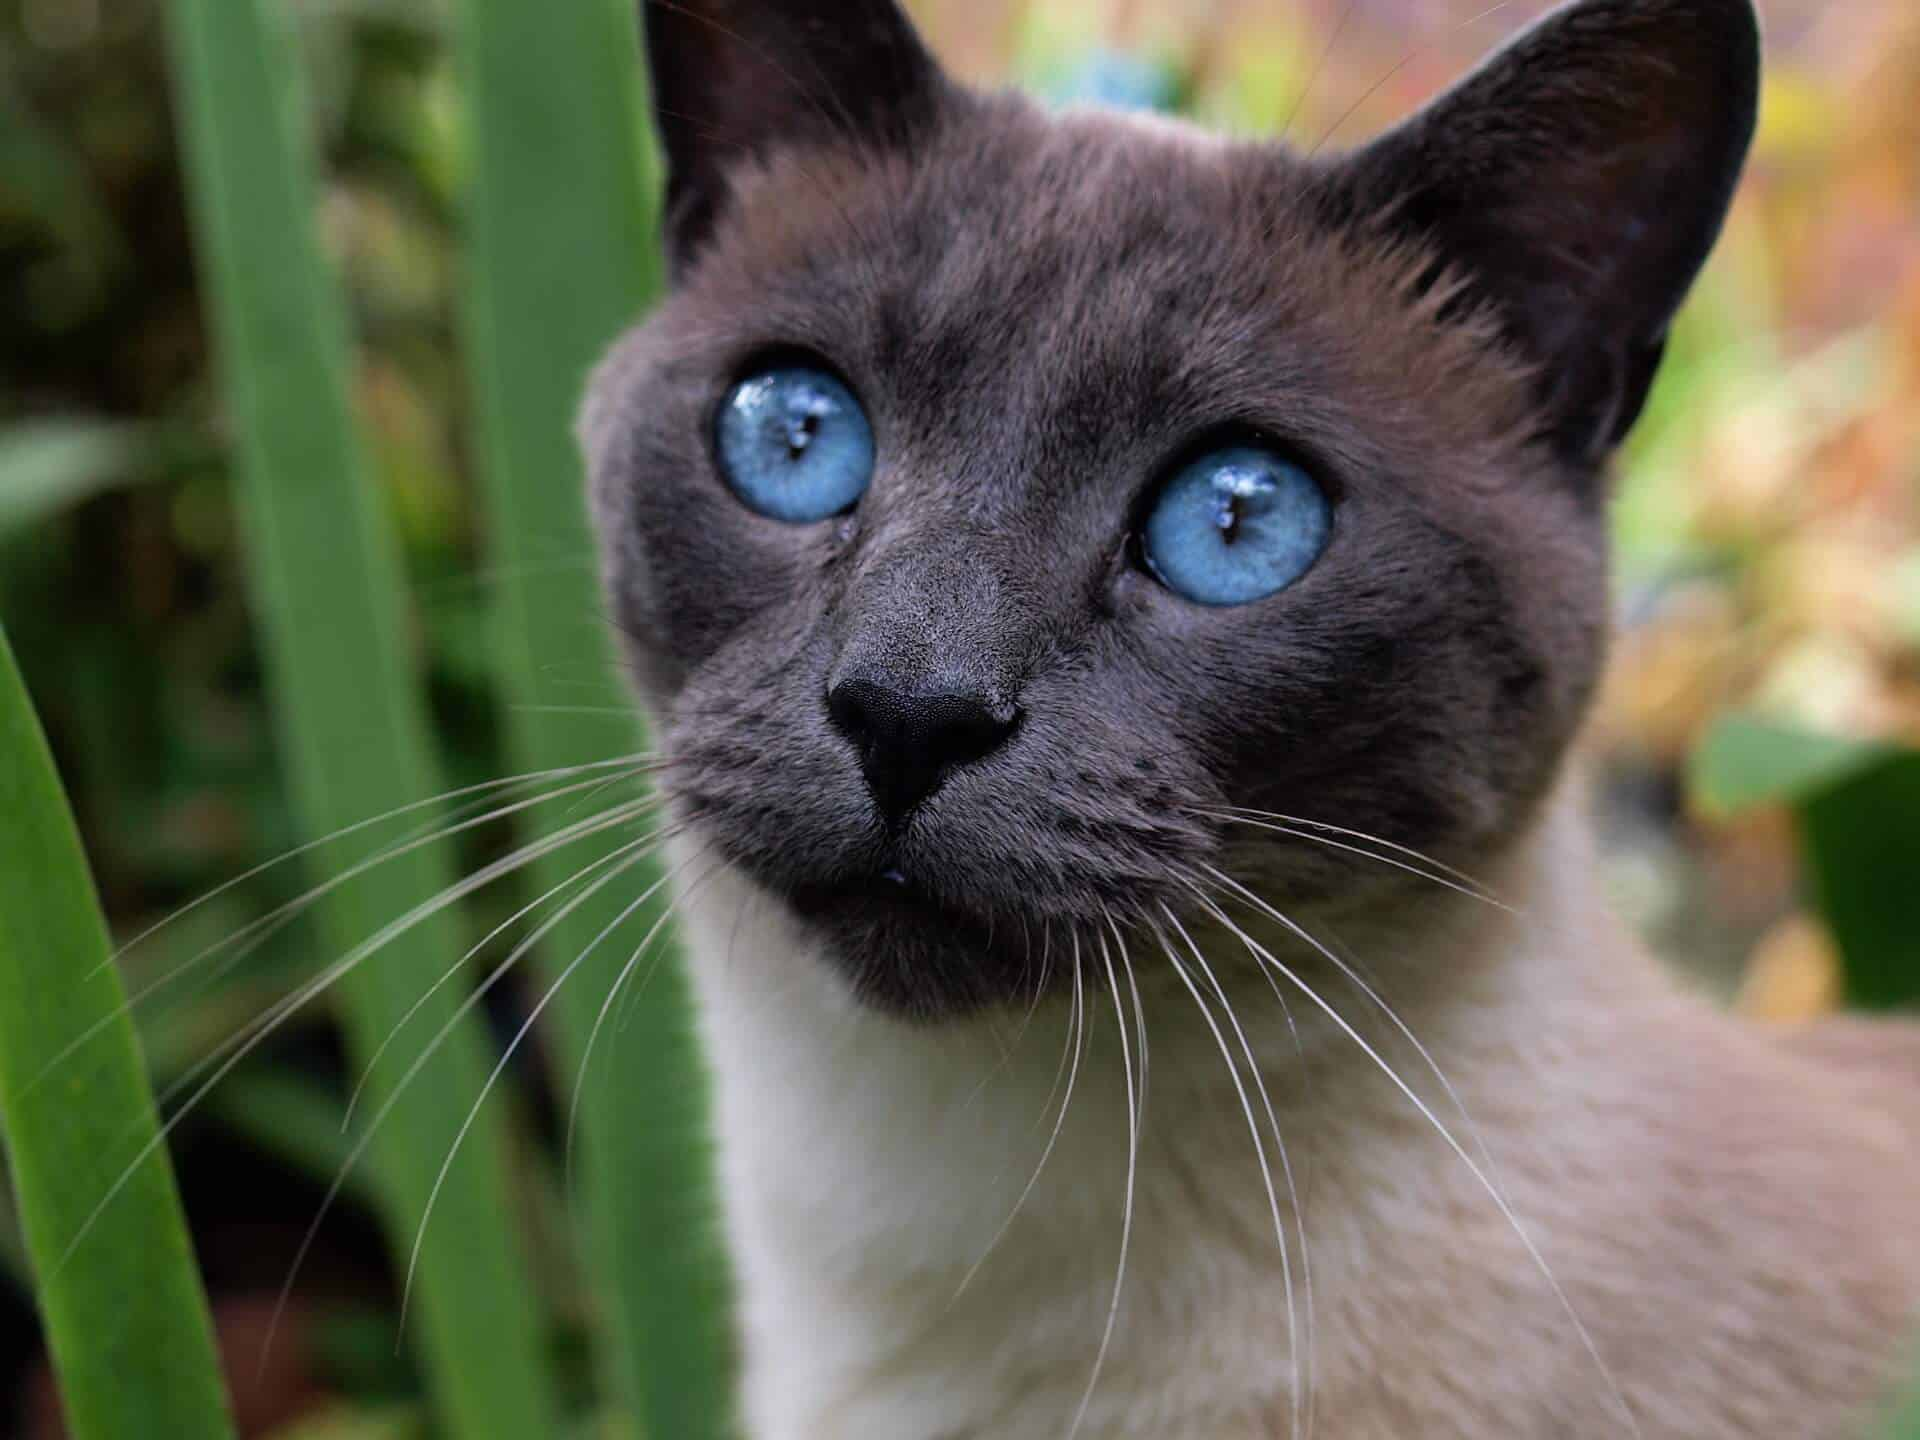 Are Siamese Cats Hypoallergenic? And Do They Shed a Lot? 1